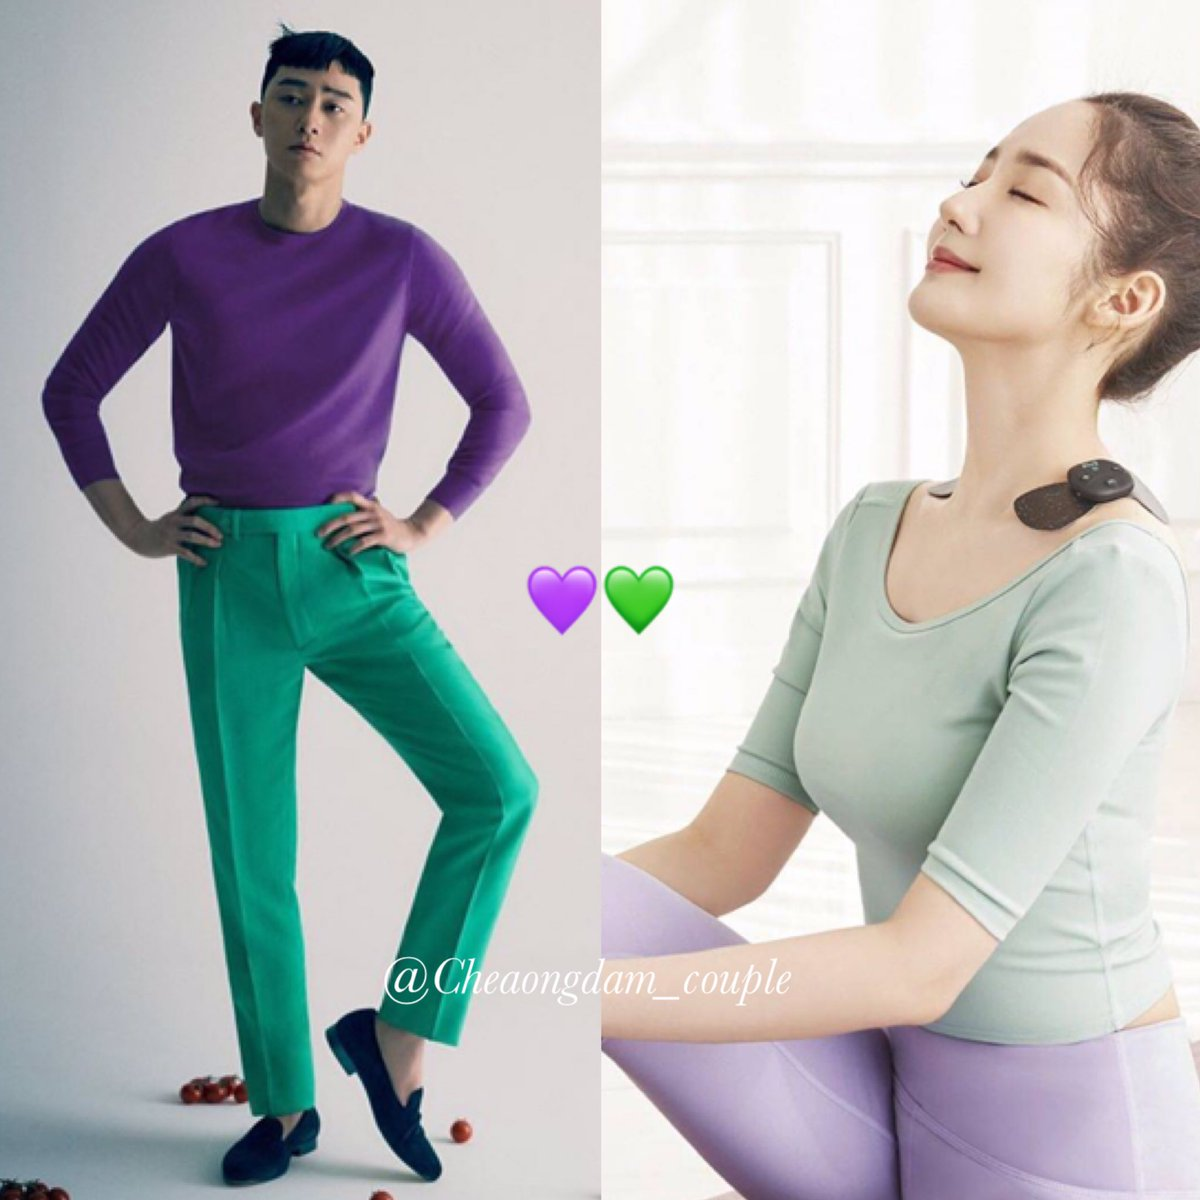 💜💚 อารมณ์มันได้ สีมันใช่ !!😜😍 #parkparkcouple image of the day!😘  PSJ magazine shooting #tsingapore  PMY CF shooting #klug_korea  #ParkMinYoung #박민영 #박서준 #ParkSeoJoon #ParkParkCouple #2ParkCouple #CheongdamCouple #WhatsWrongWithSecretaryKim https://t.co/VLMwSI84td